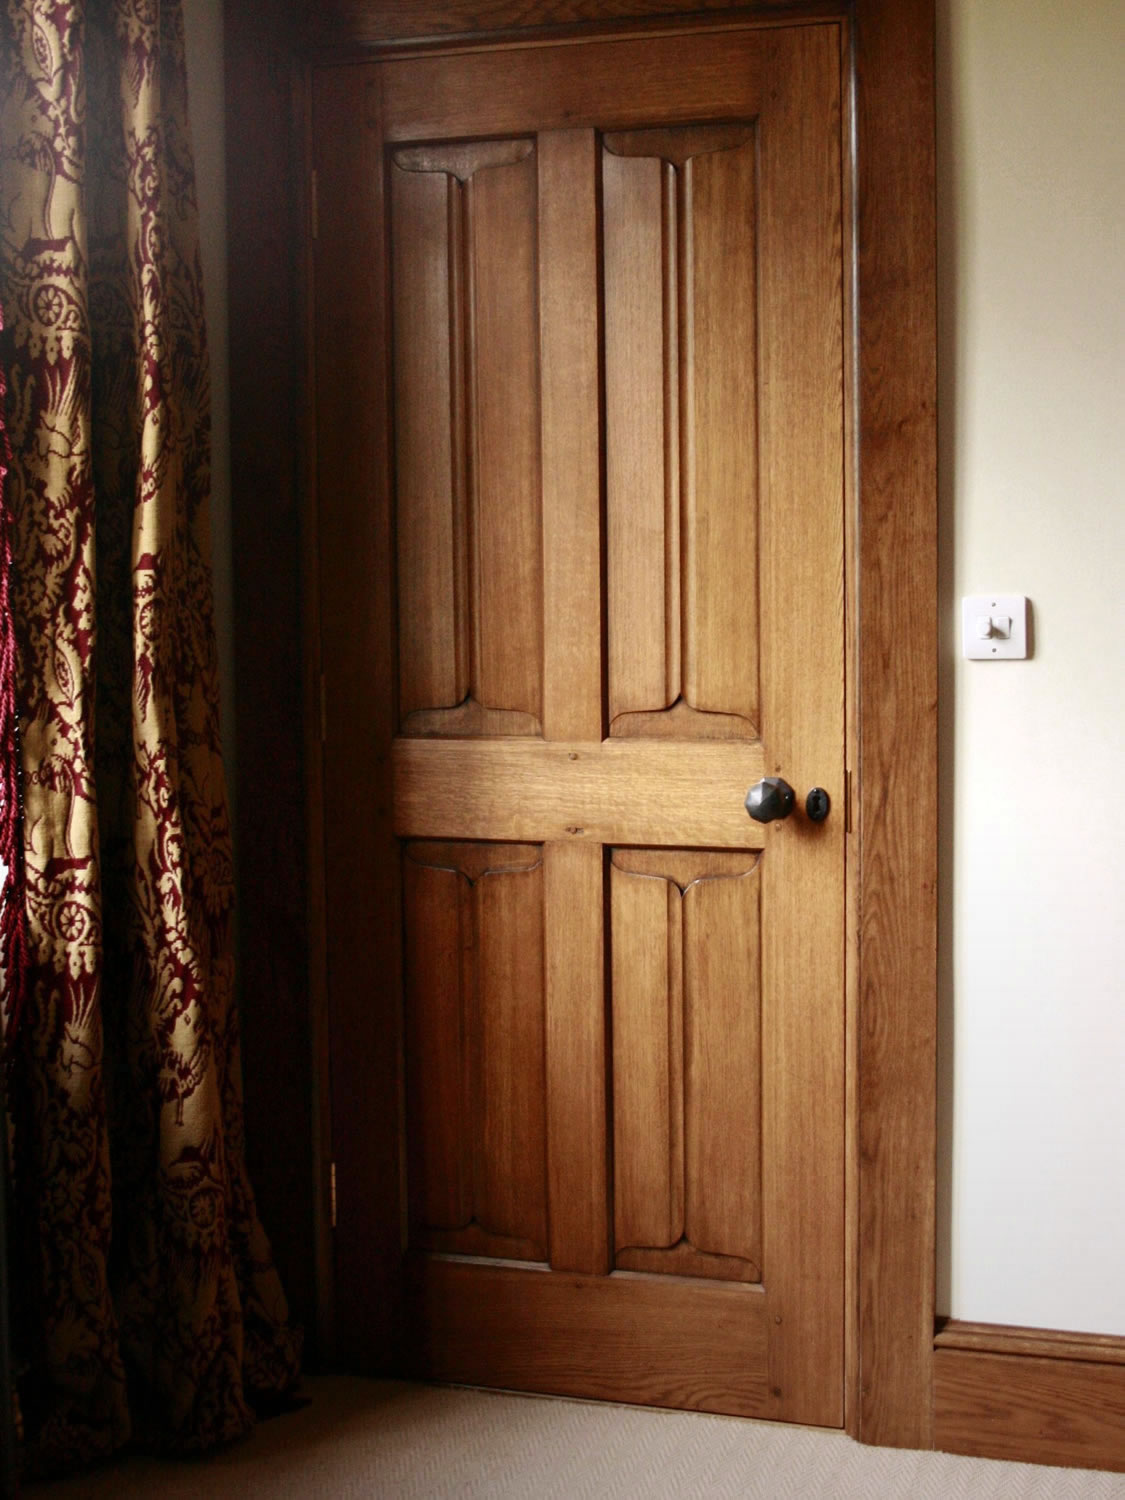 Internal oak door with hand-carved parchemin panels